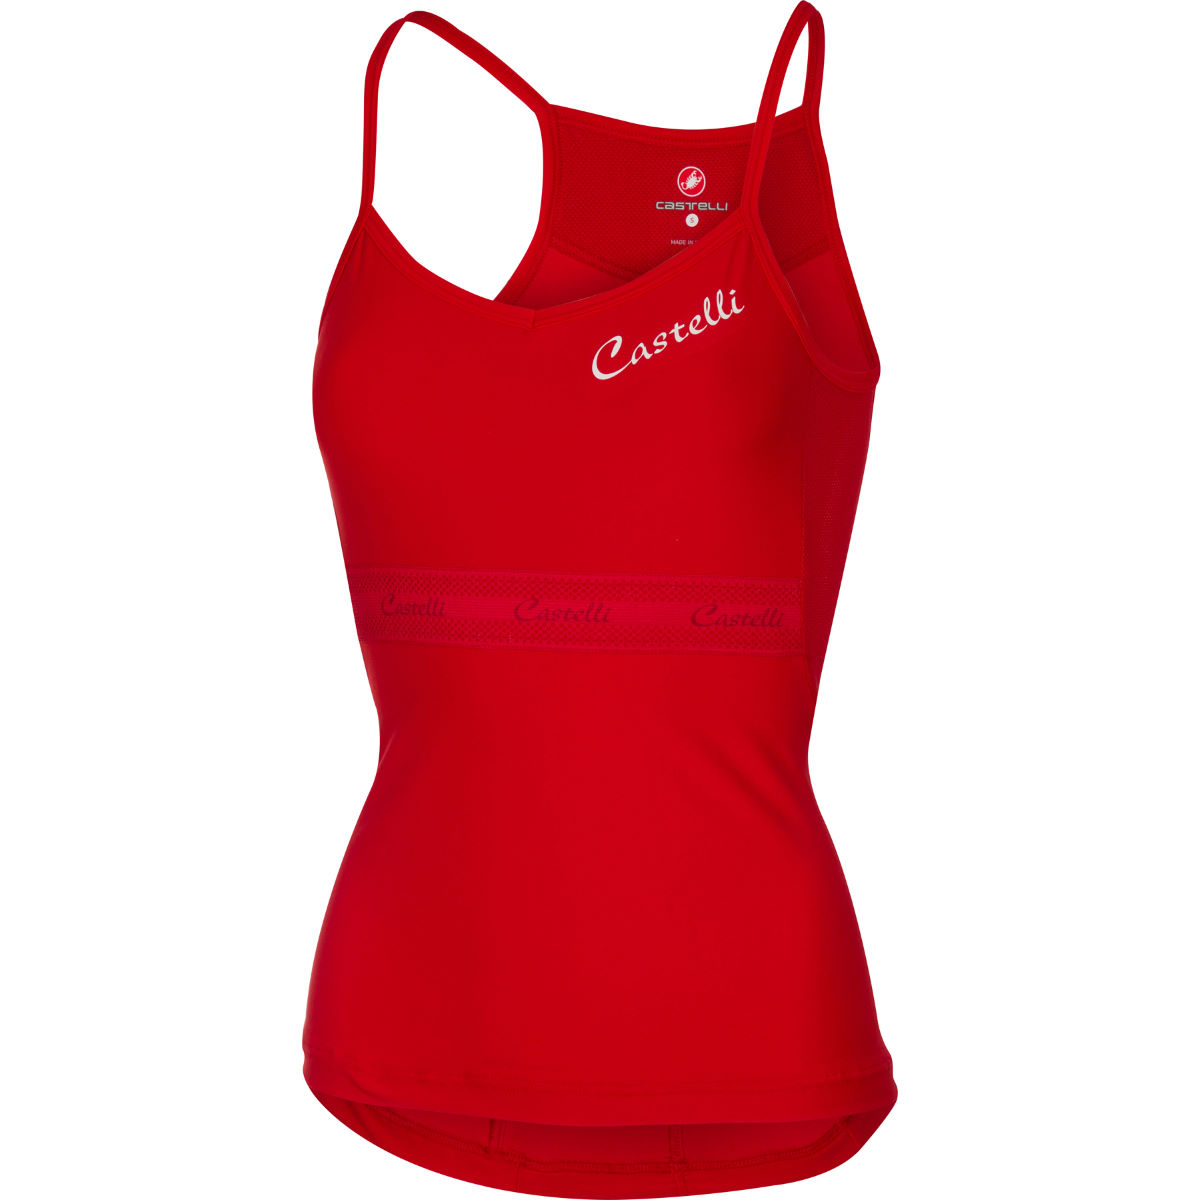 Maillot Femme Castelli Spaghettino - XS Rouge Maillots vélo à manches courtes